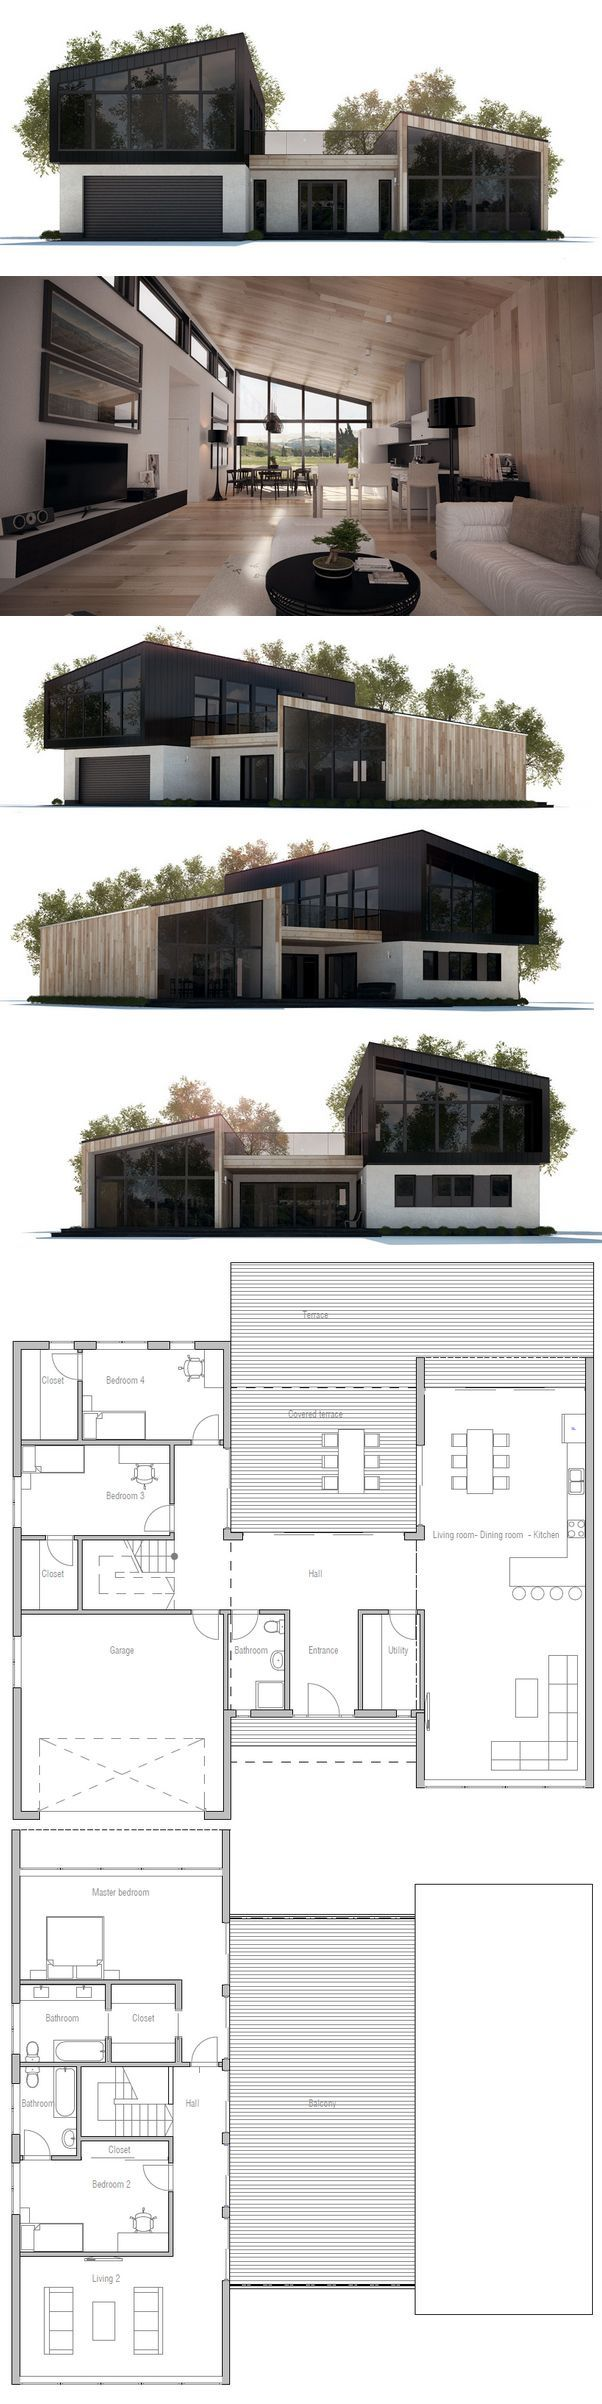 House Plan with four bedrooms./ By Concept homes